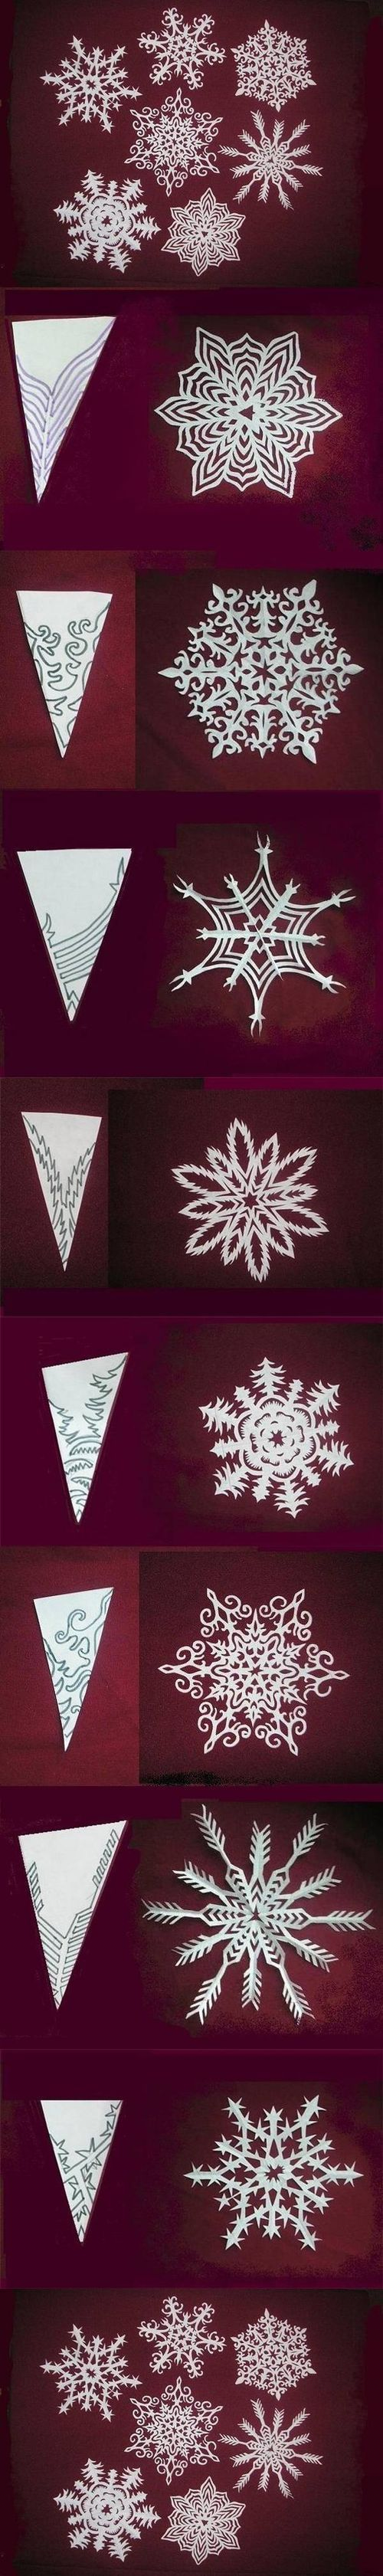 DIY Snowflakes Paper Pattern...couldn't find the patterns once I clicked on the pin, but can look at the cover photo.